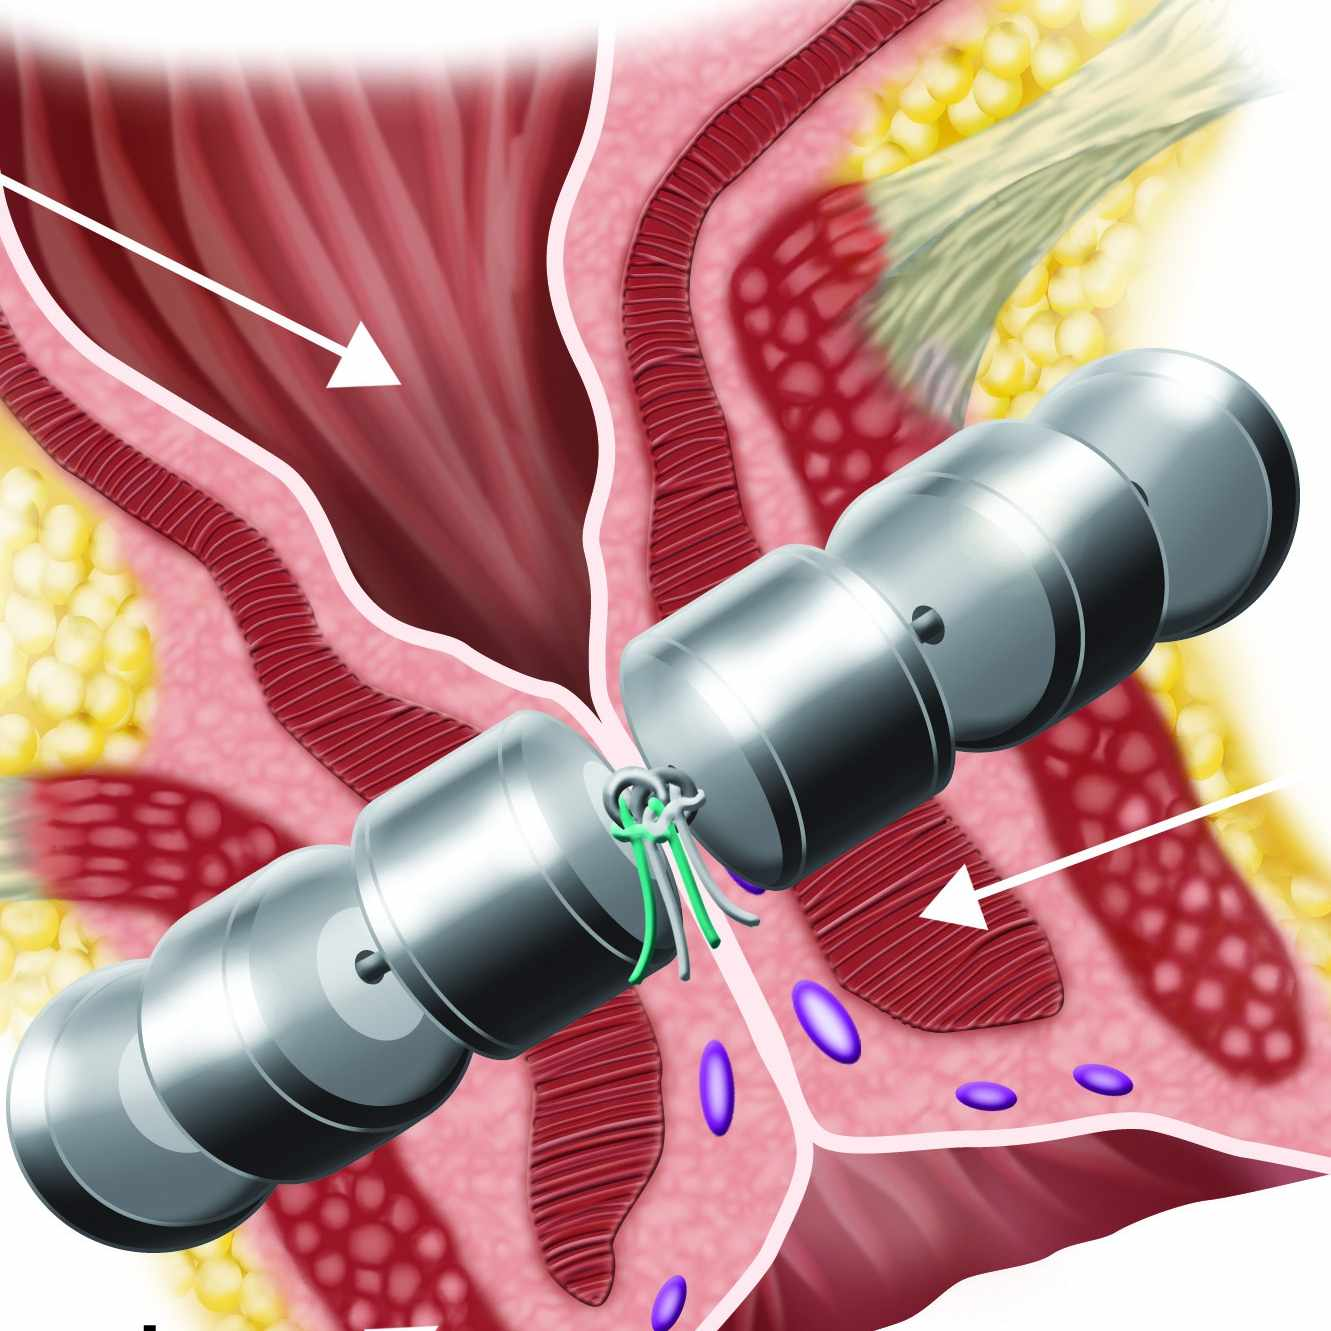 FENIX Device implanted around the anal canal in a closed position